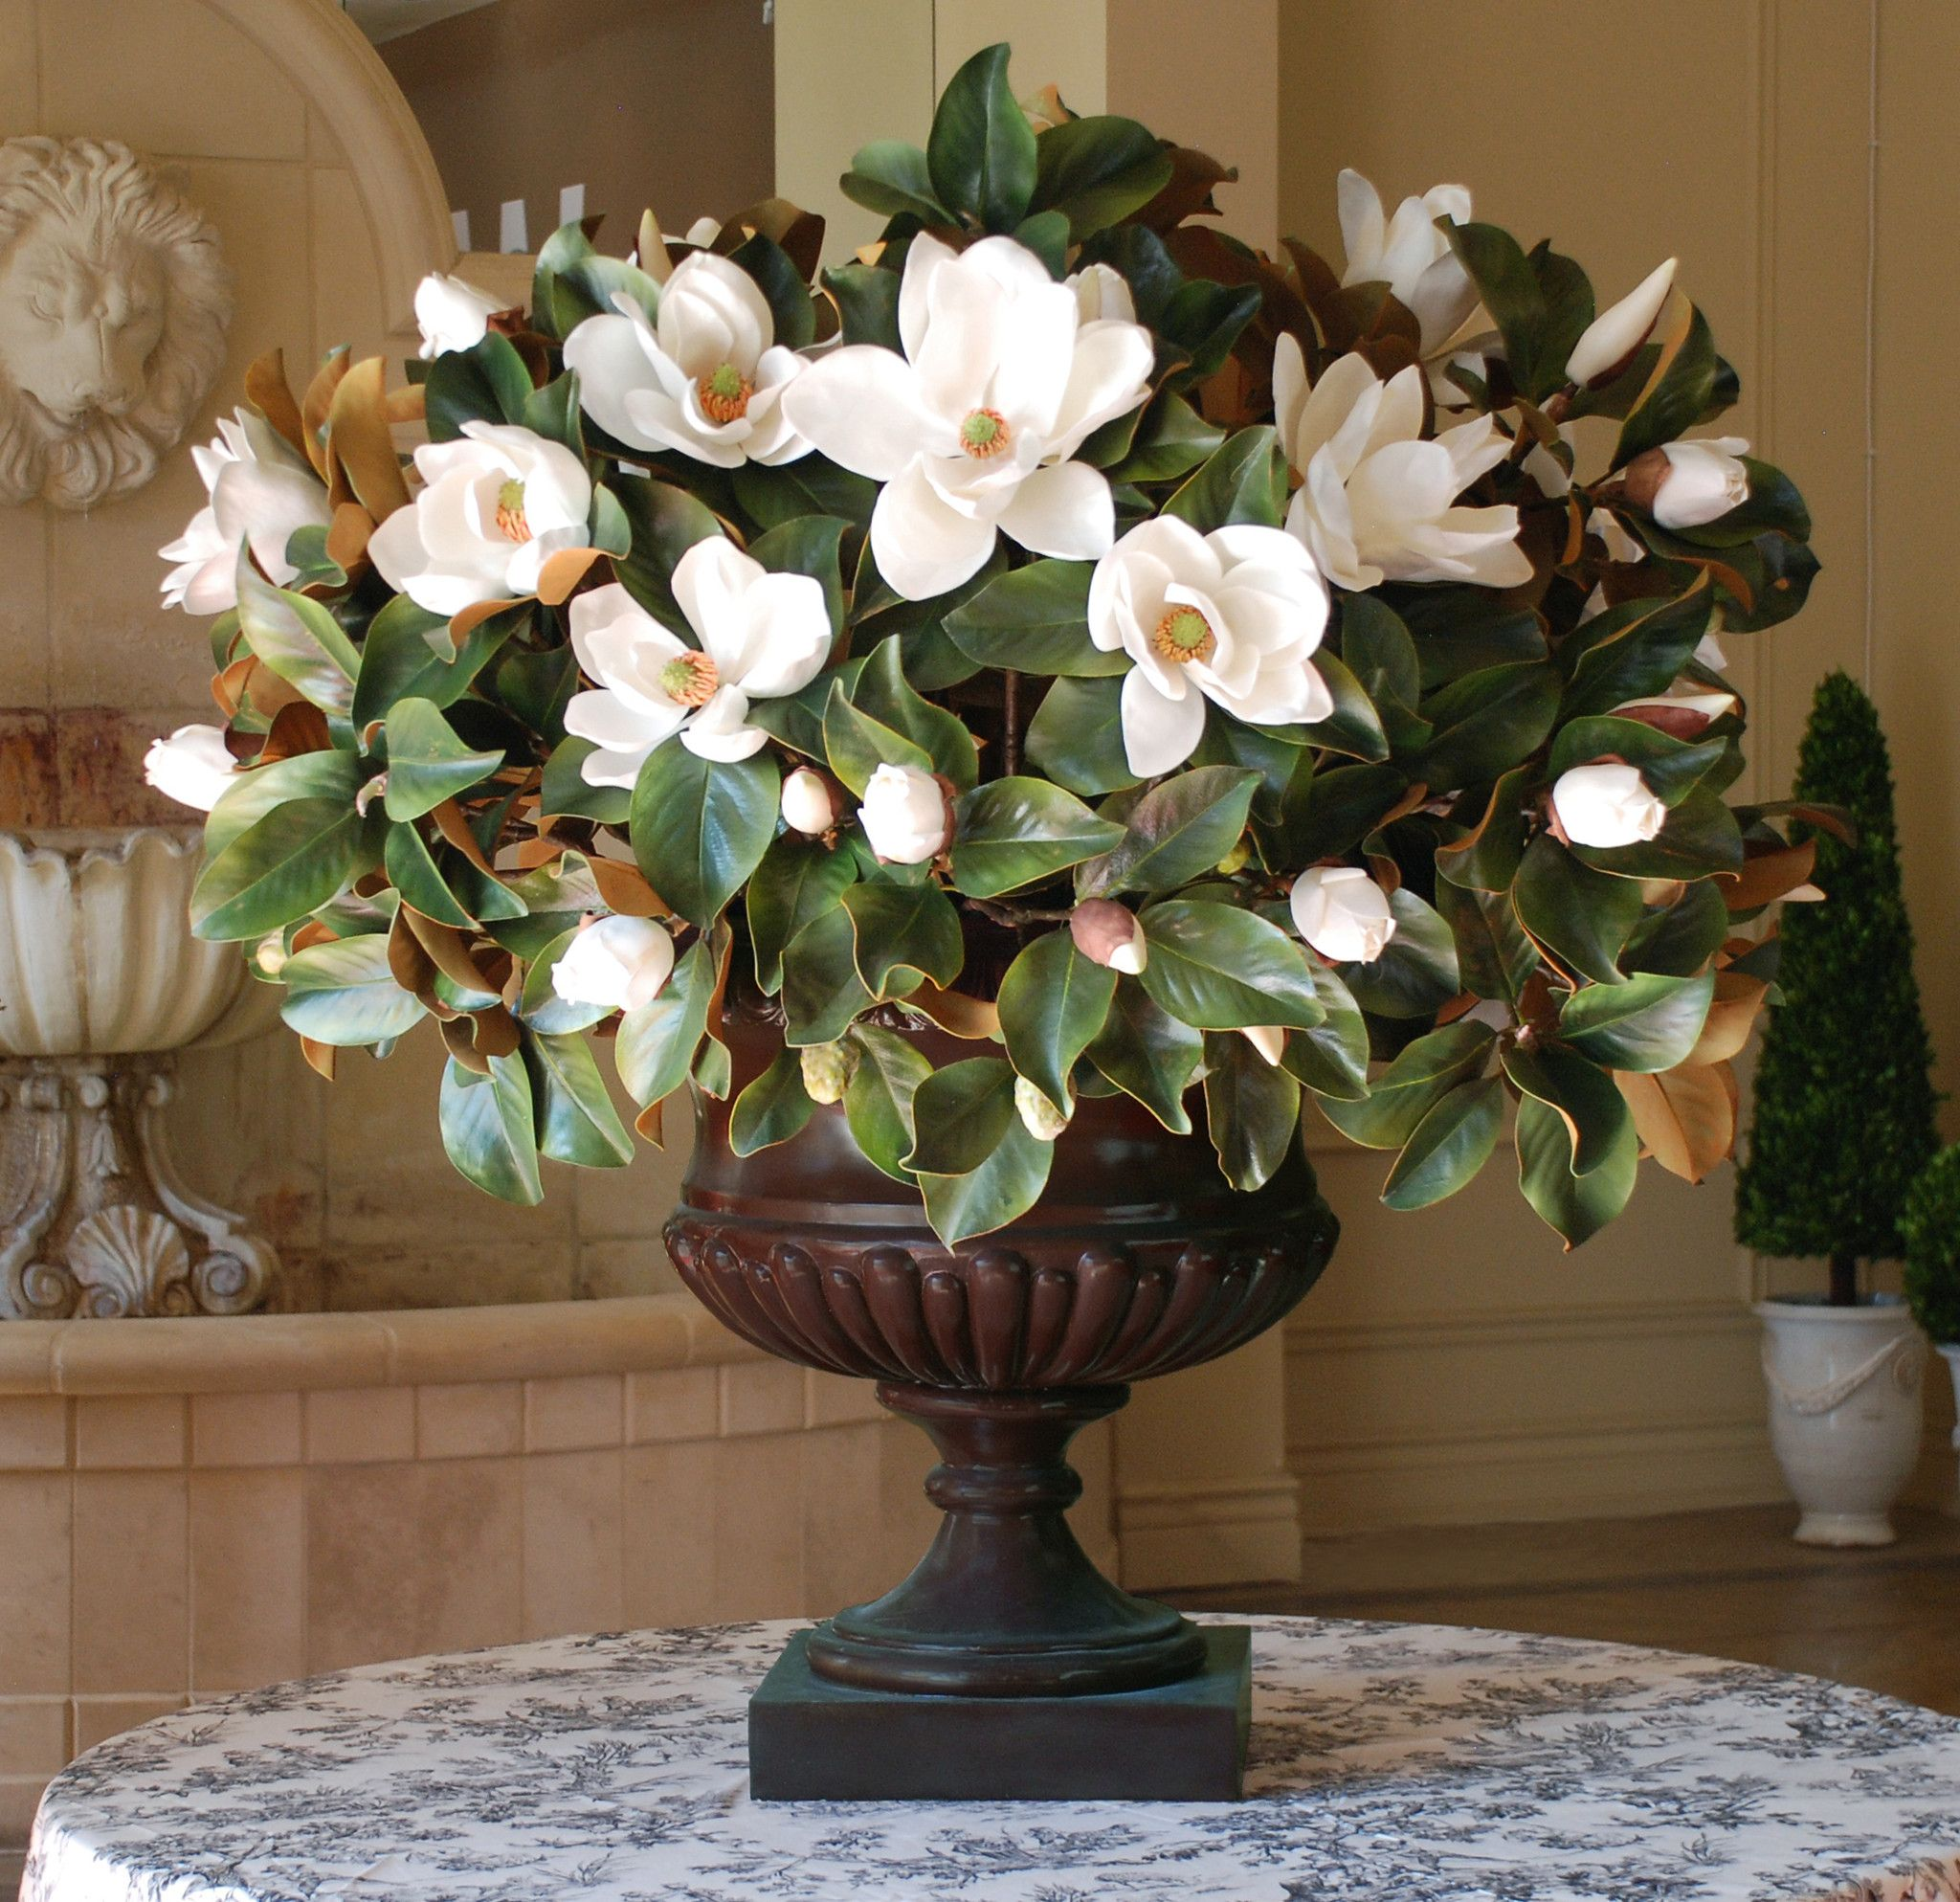 Fake Floral Arrangements For Home Magnolia In Palladin Urn Whicon02 Whgr Architectural